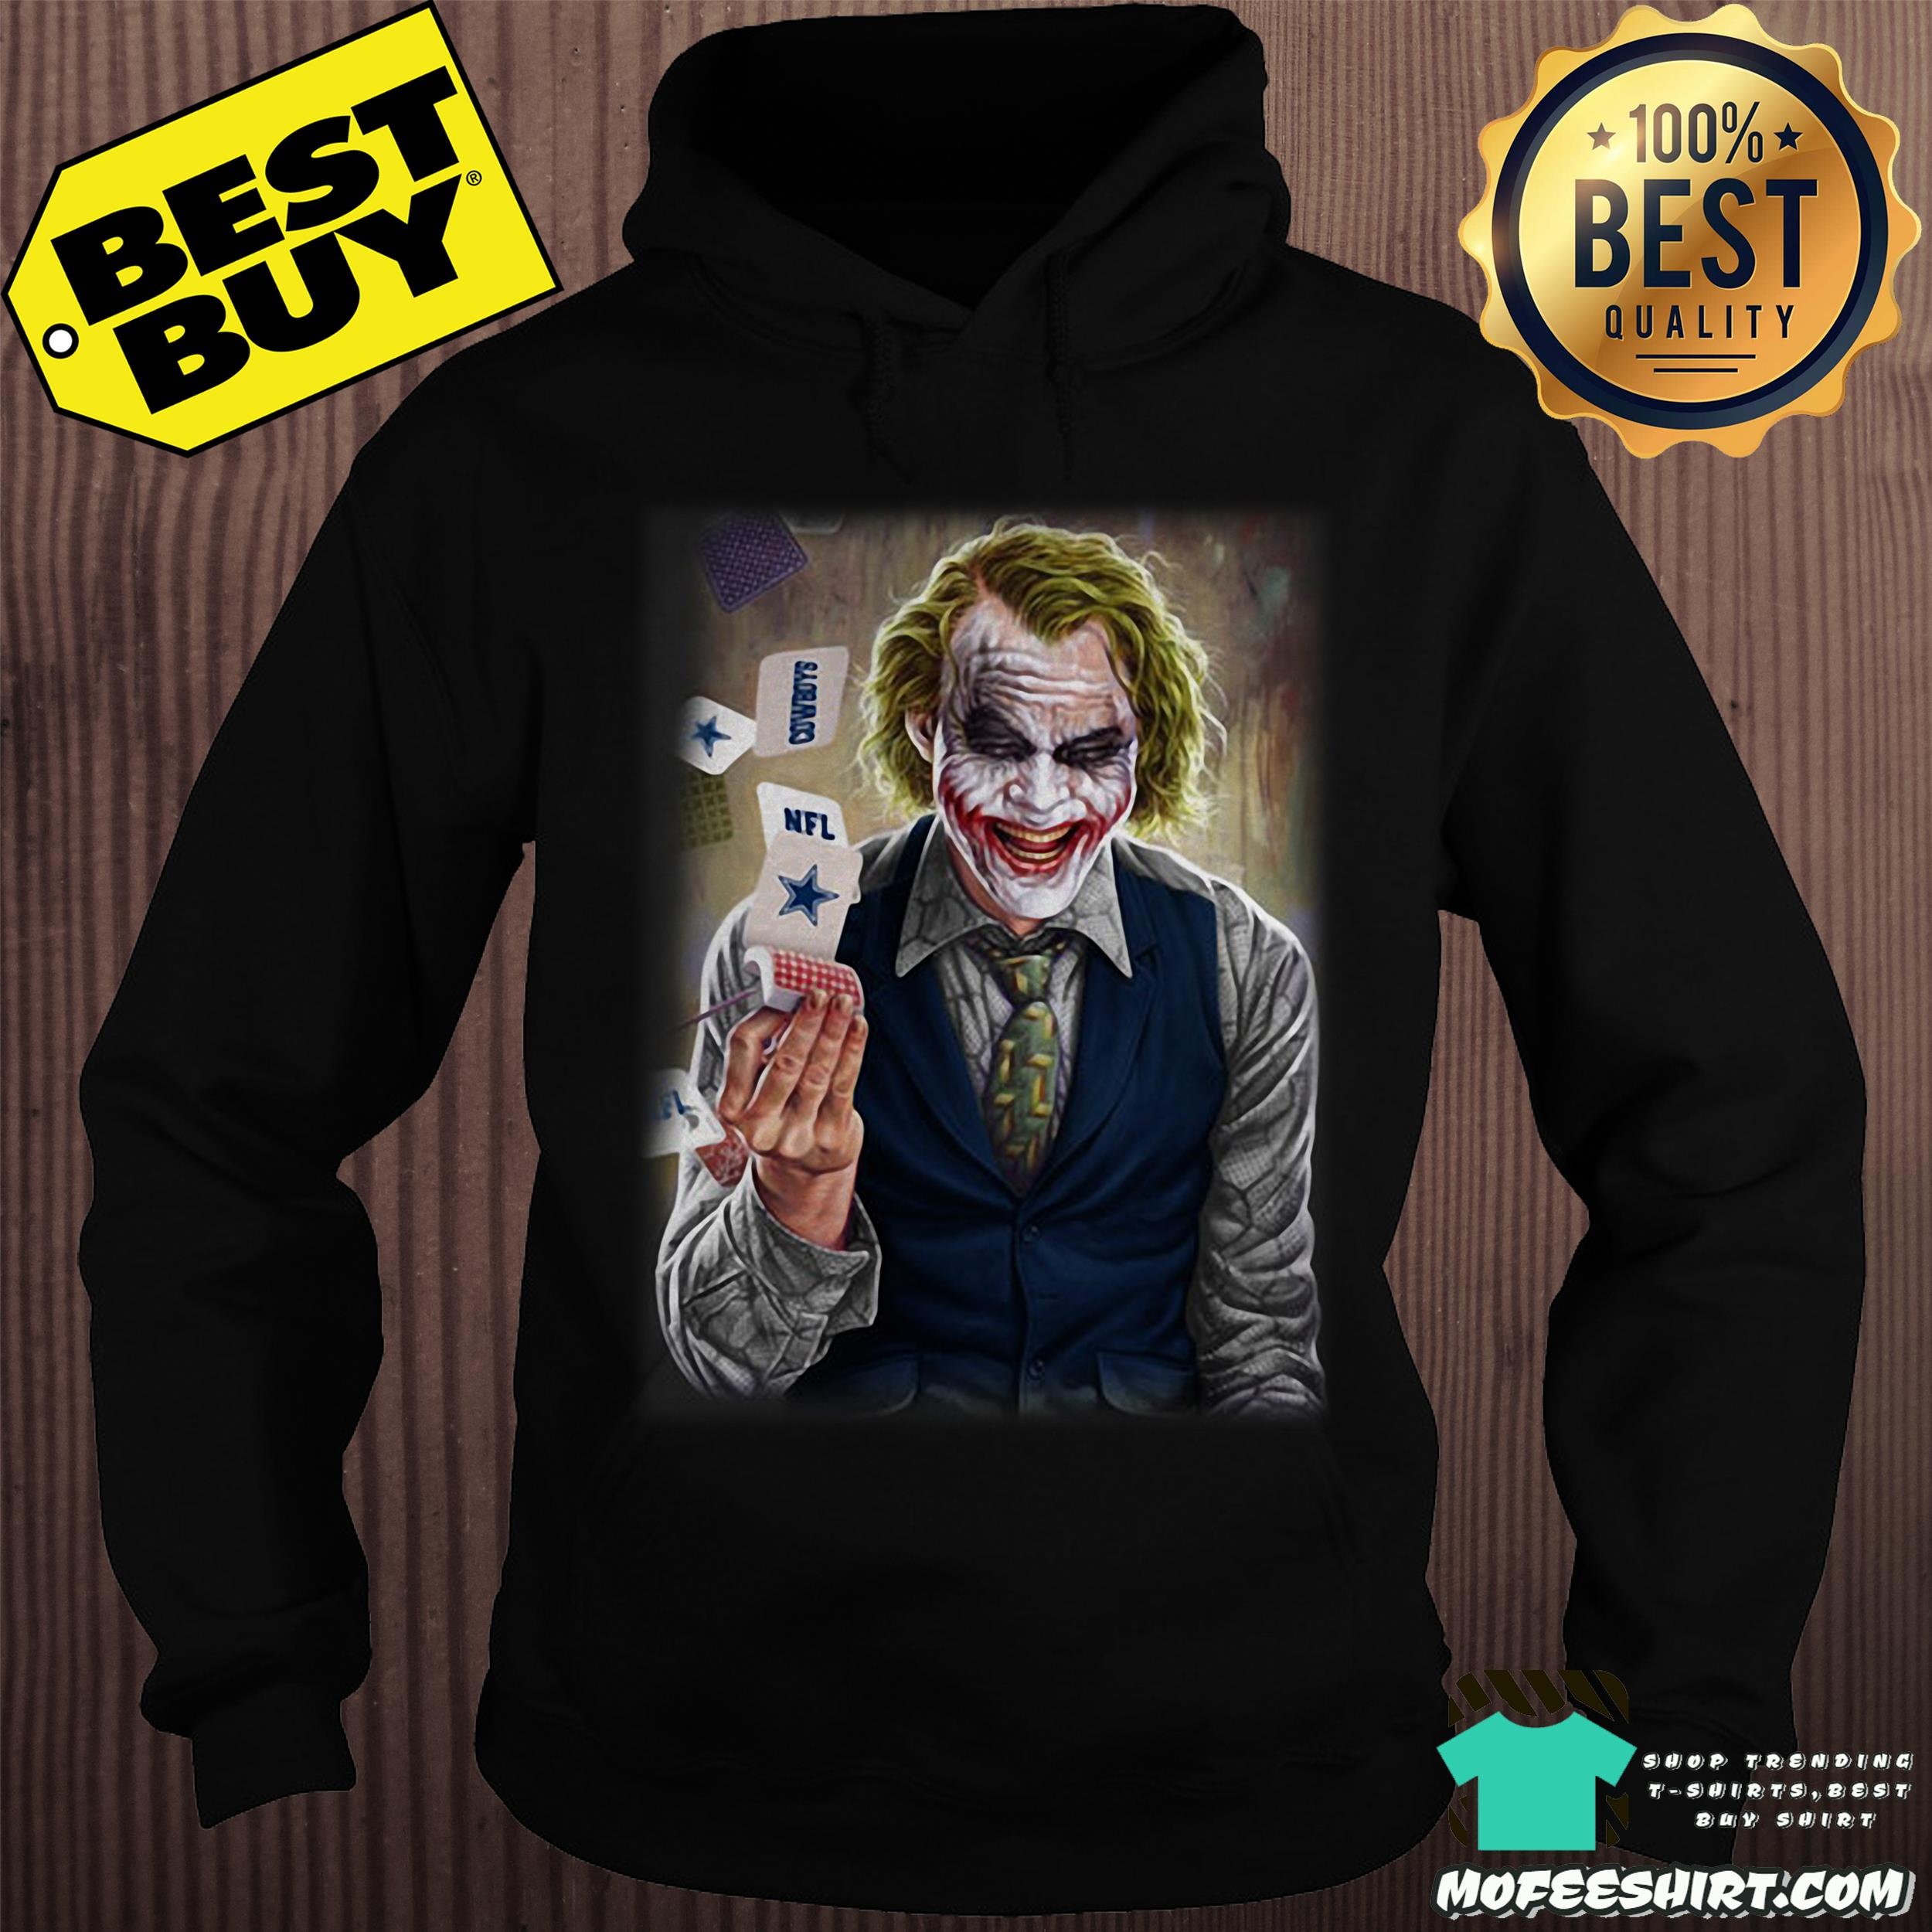 nfl joker playing cards dark knight hoodie - NFL Joker Playing Cards Dark Knight shirt